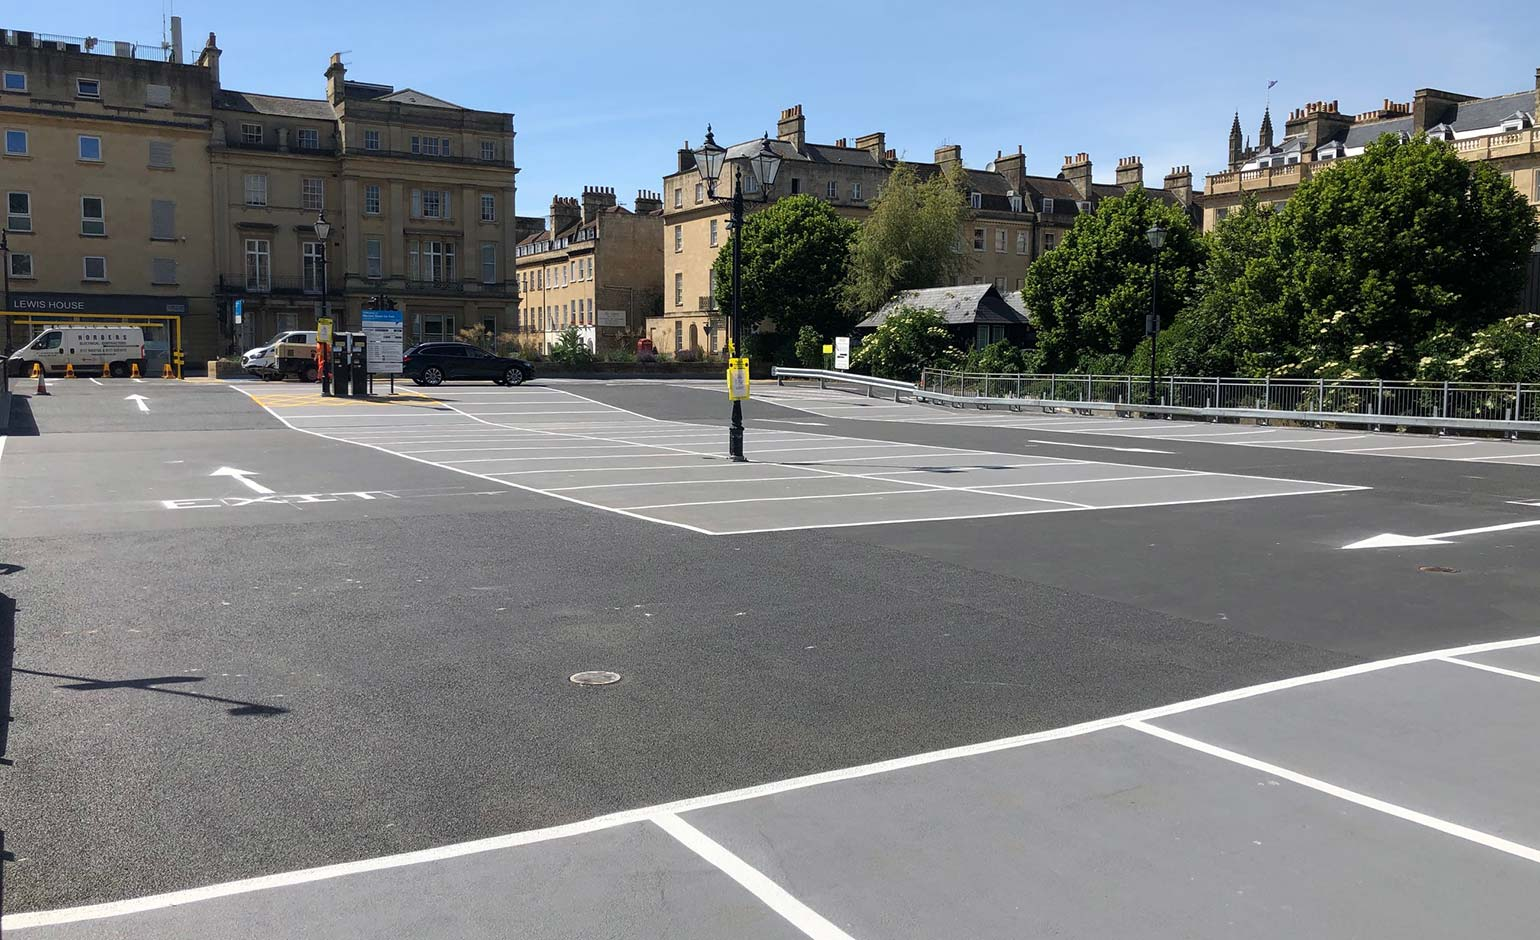 Manvers Street car park reopens to public after undergoing maintenance